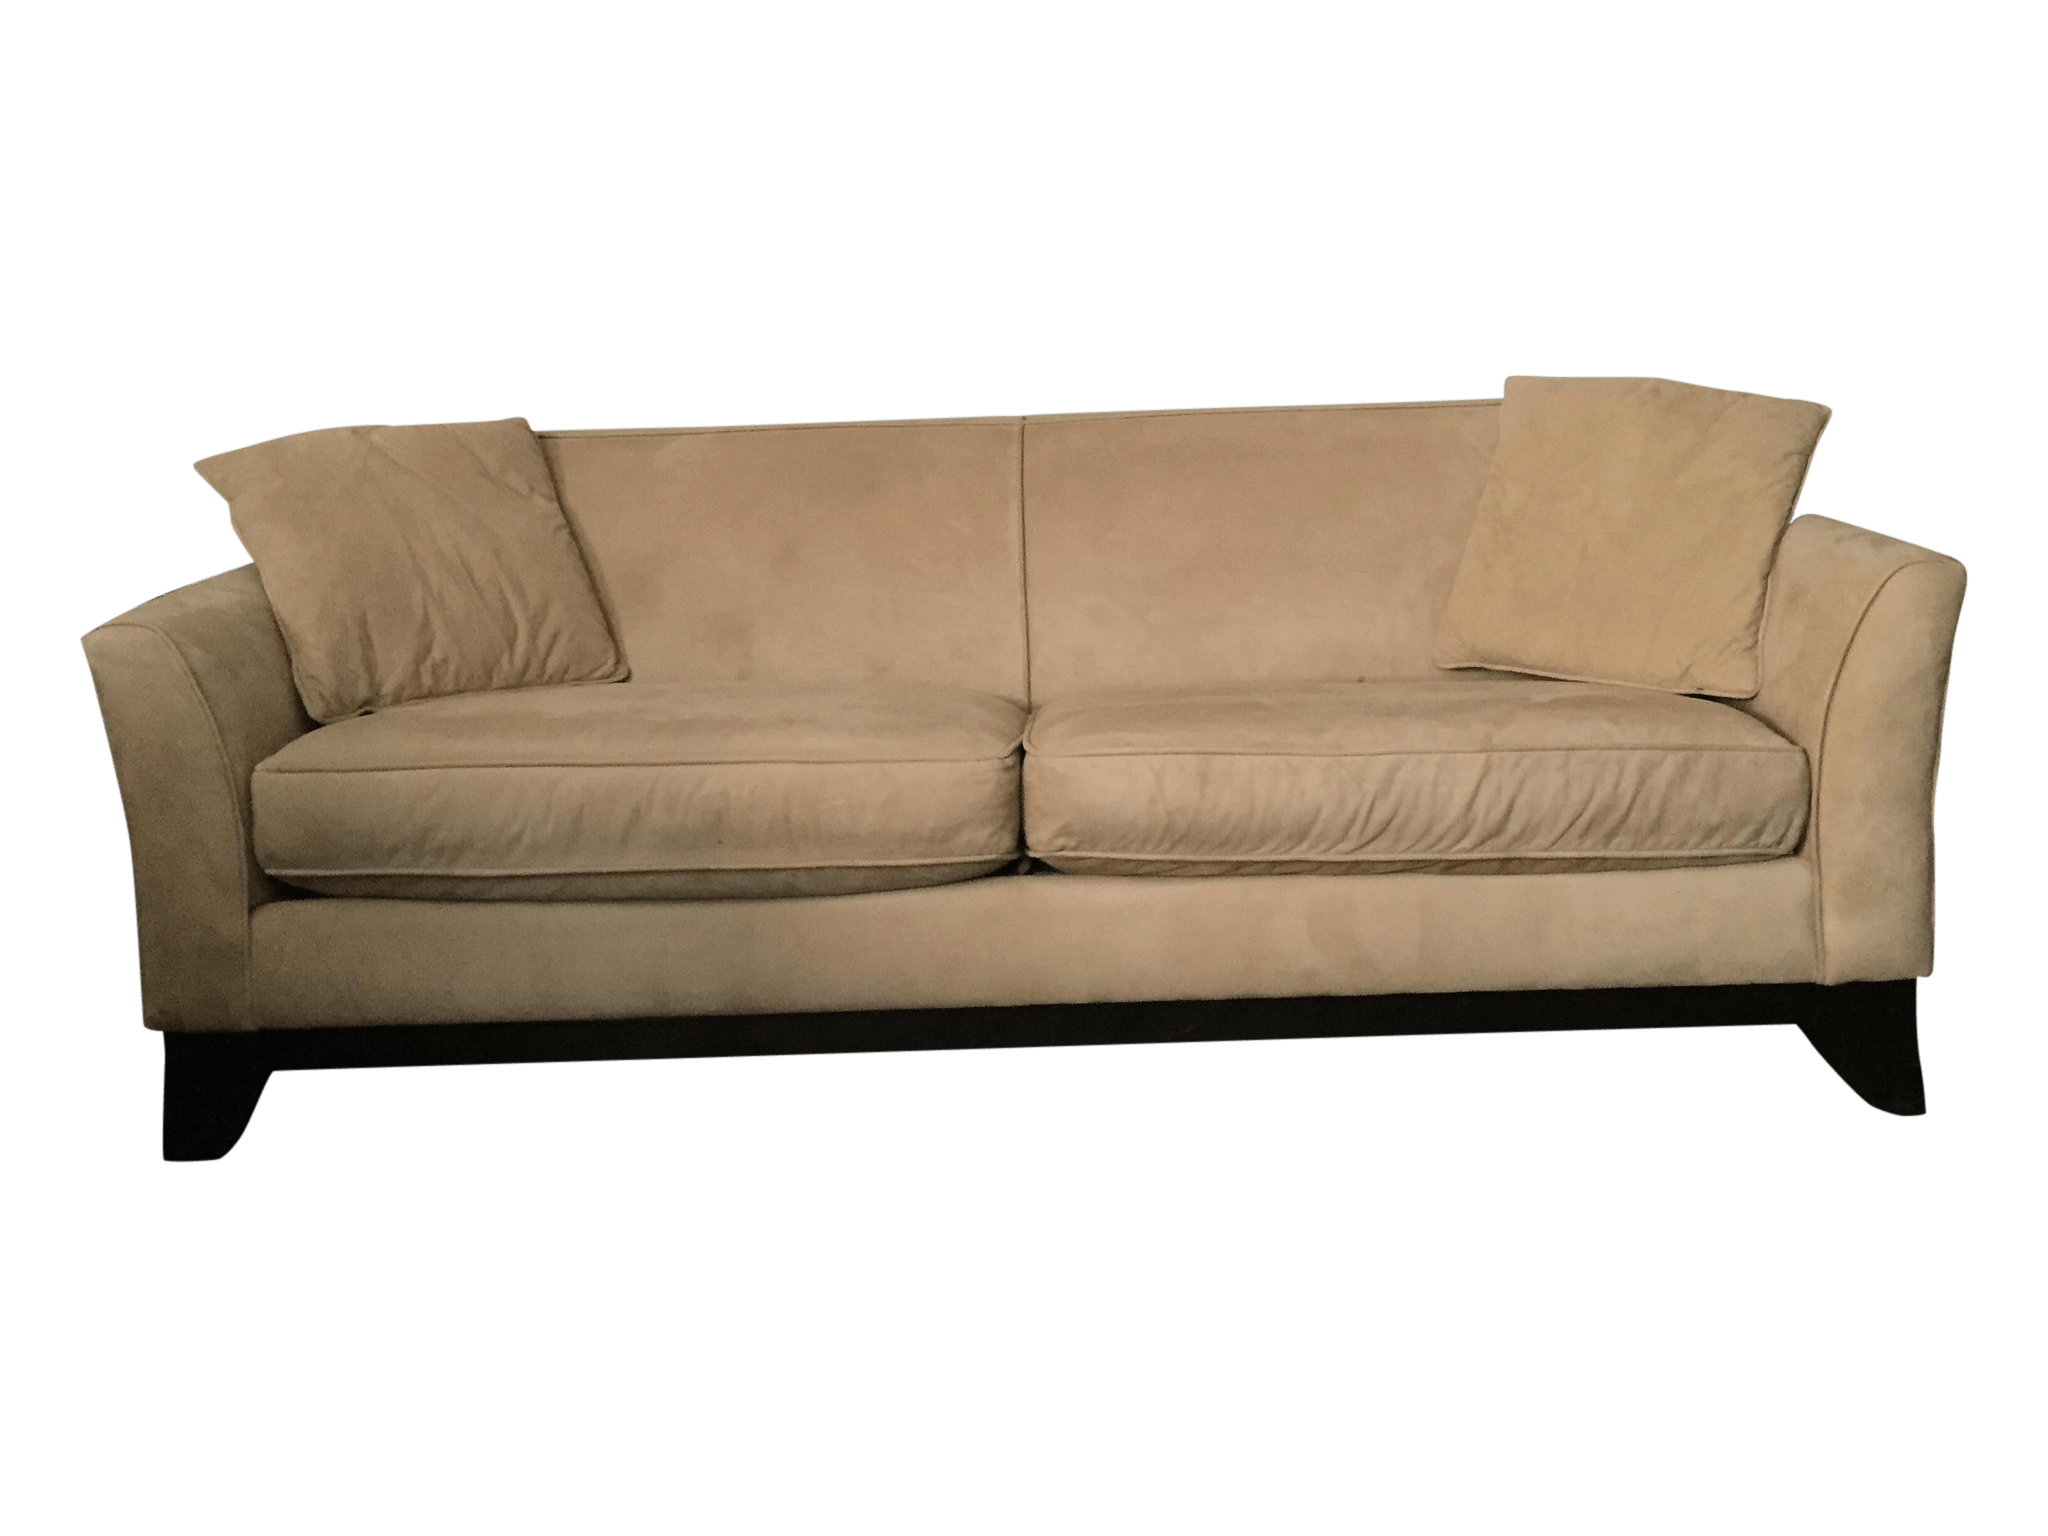 pottery barn seabury sleeper sofa best mattress for bed suede chairish